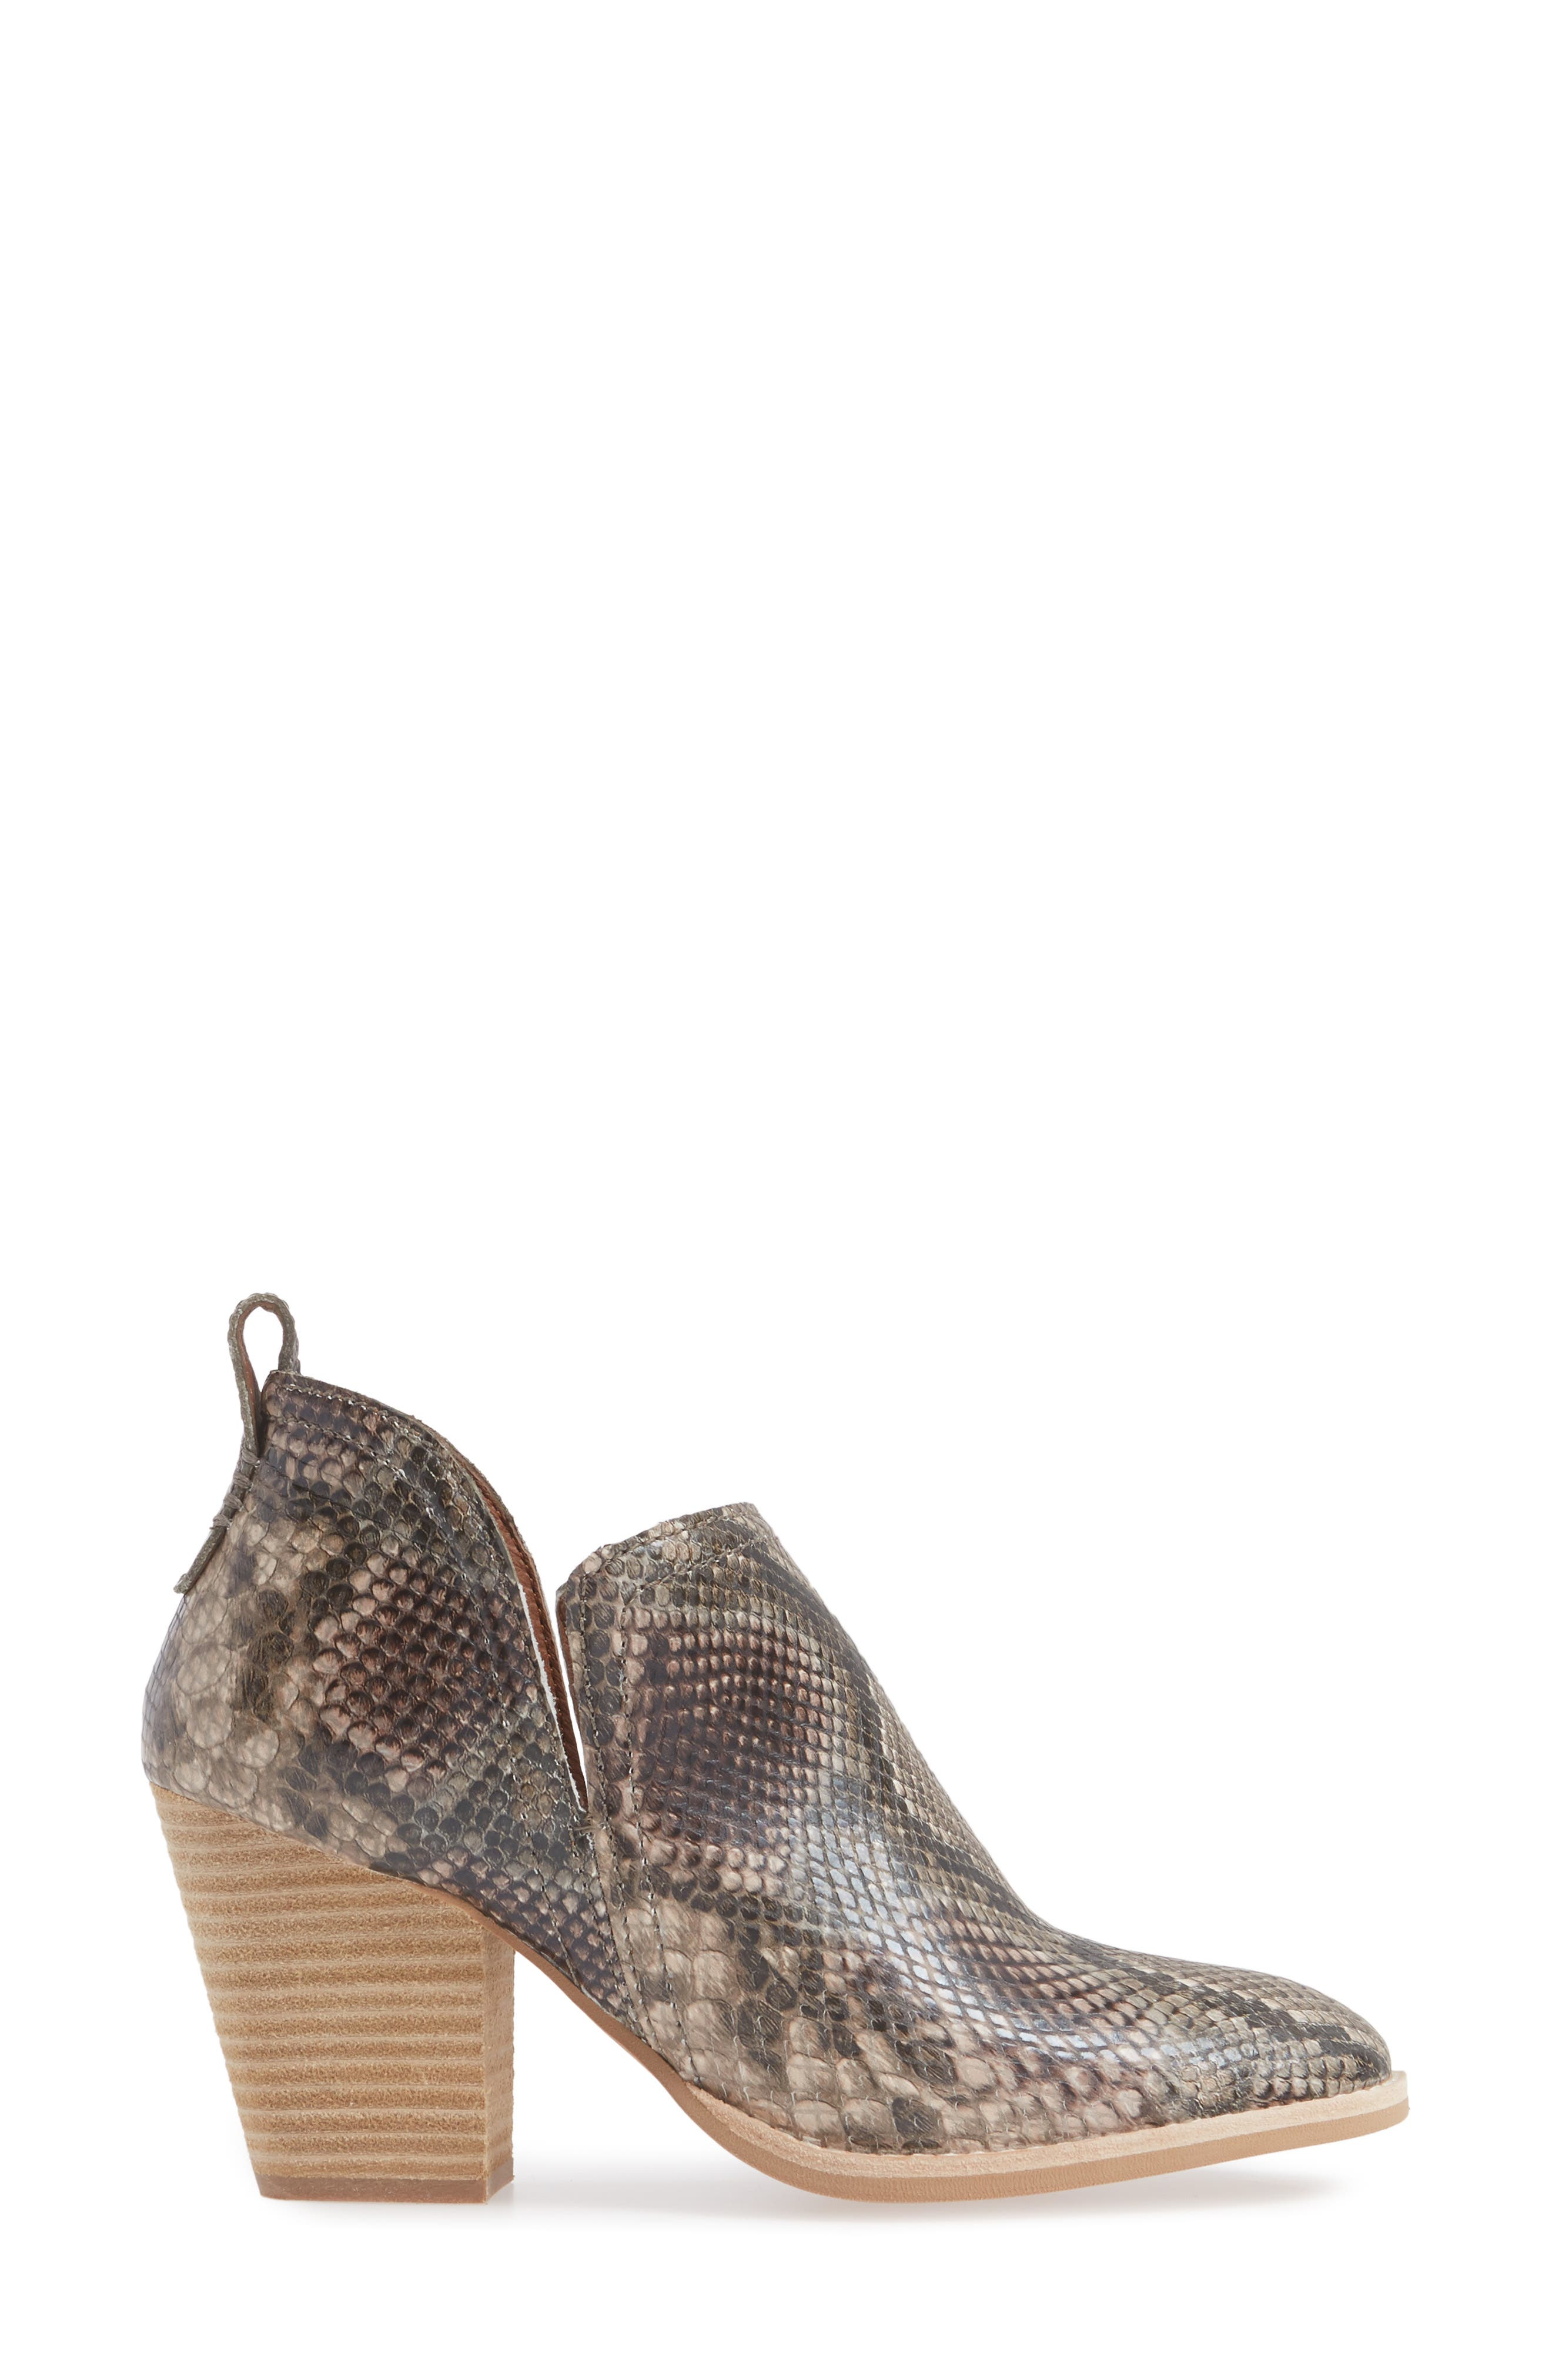 Rosalee Bootie,                             Alternate thumbnail 3, color,                             TAUPE SNAKE PRINT MULTI